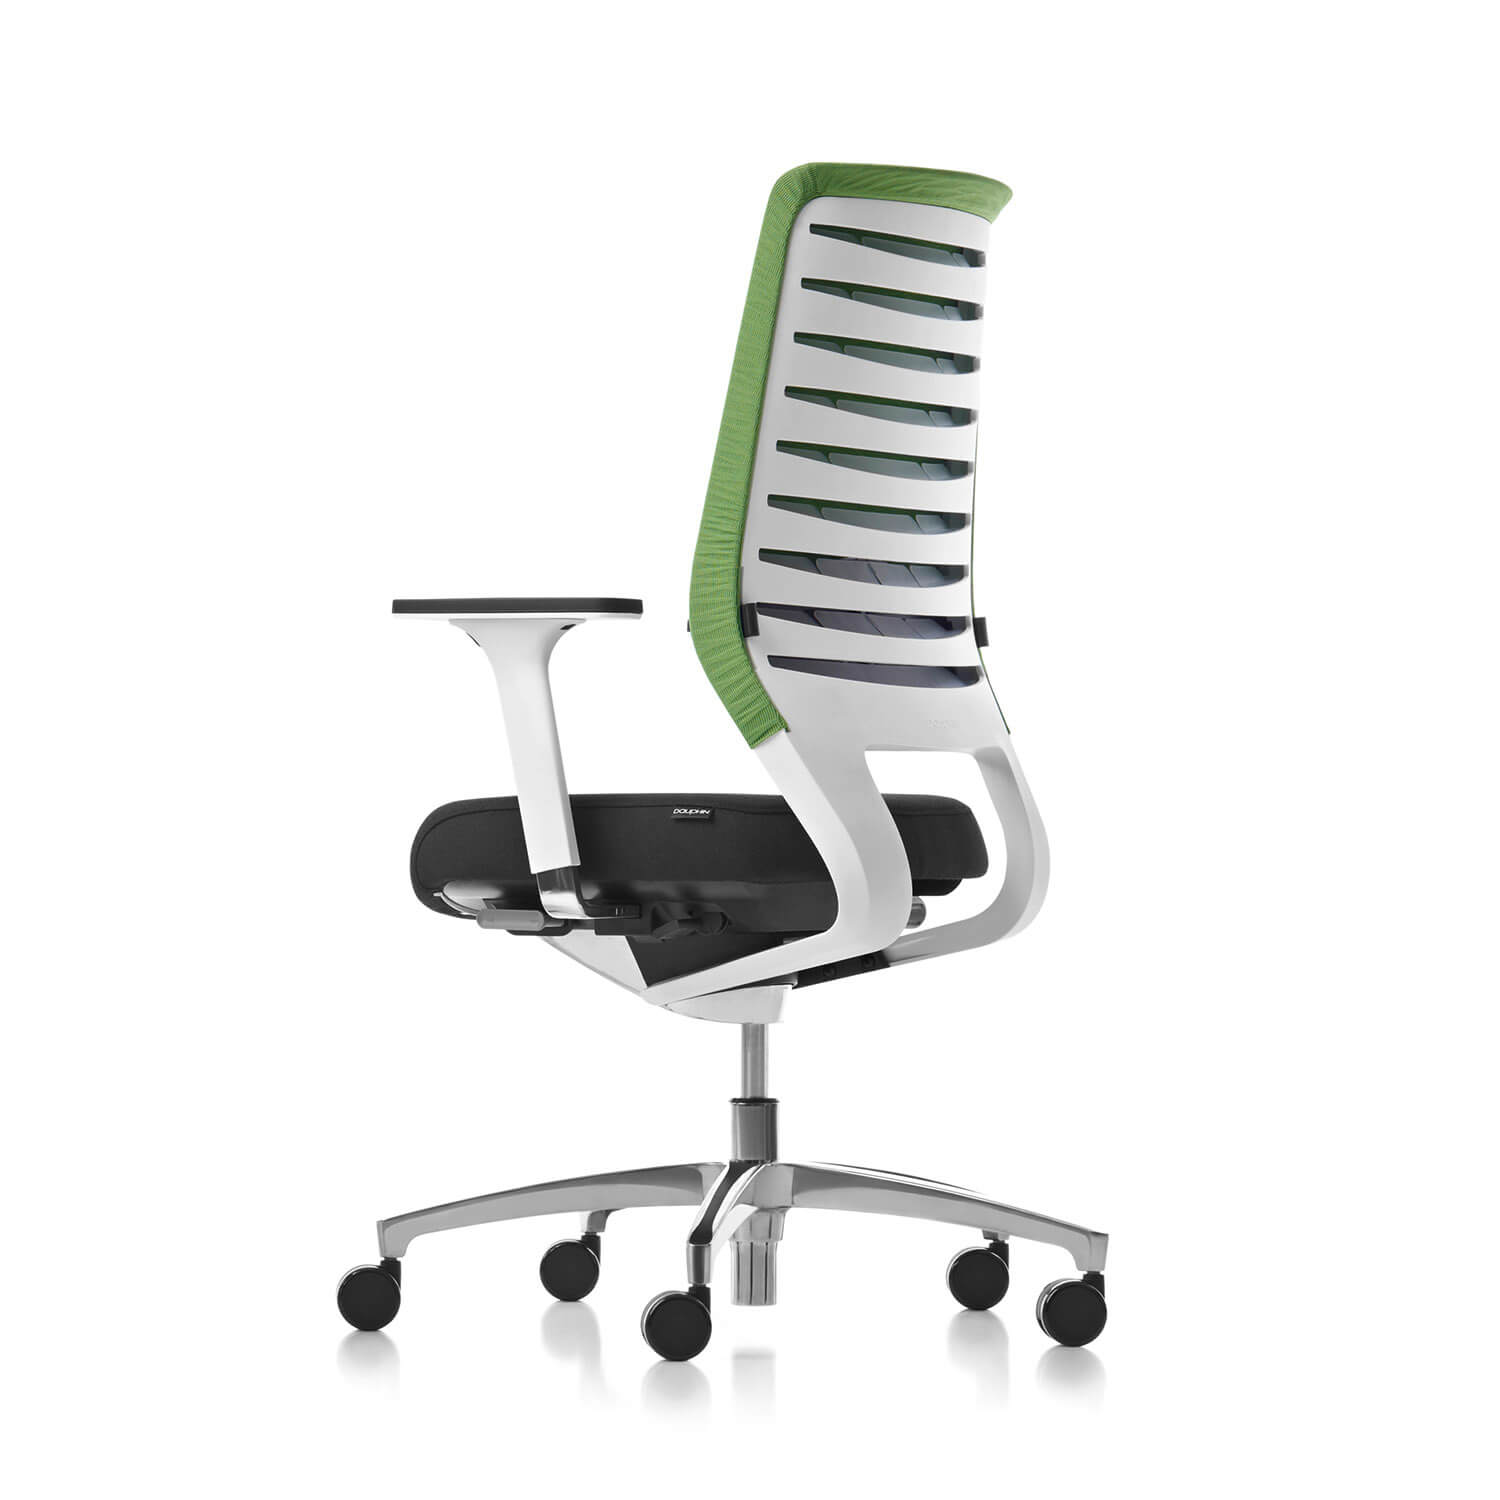 X-Code_Office Chairs3